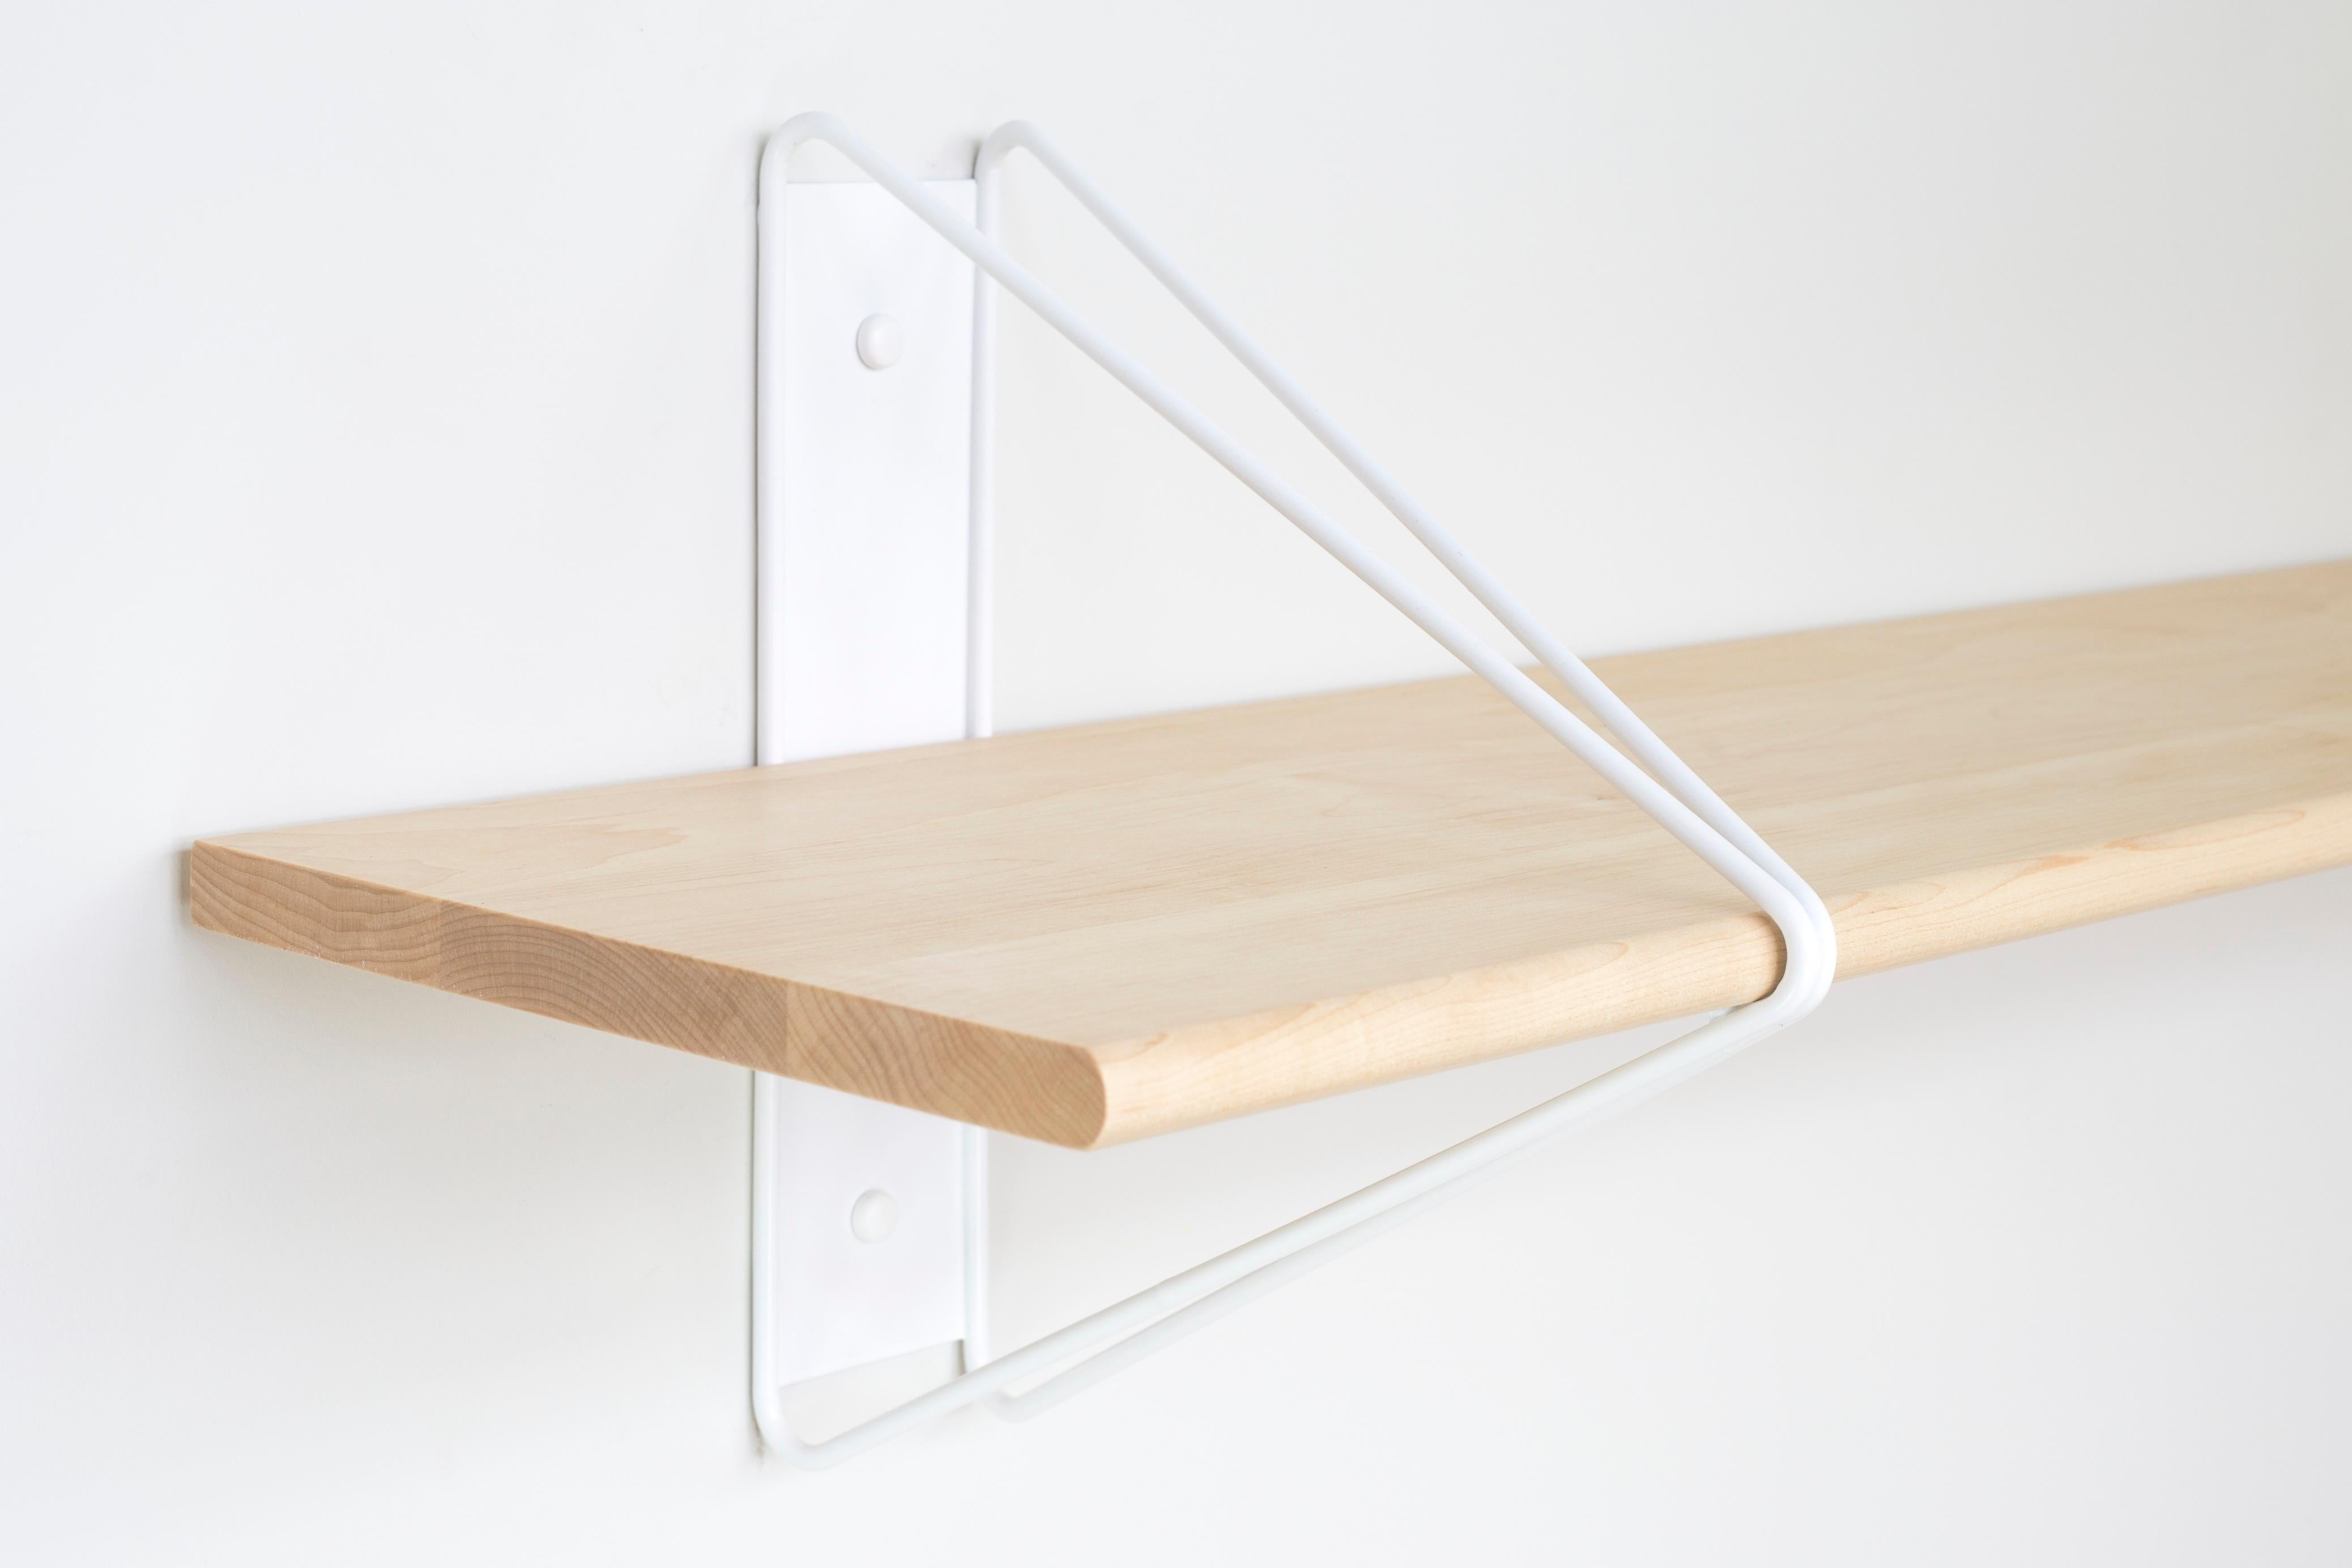 Superieur Oiled Set Of 5 Strut Shelves From Souda, White, Modern Wood Wall Shelf Or